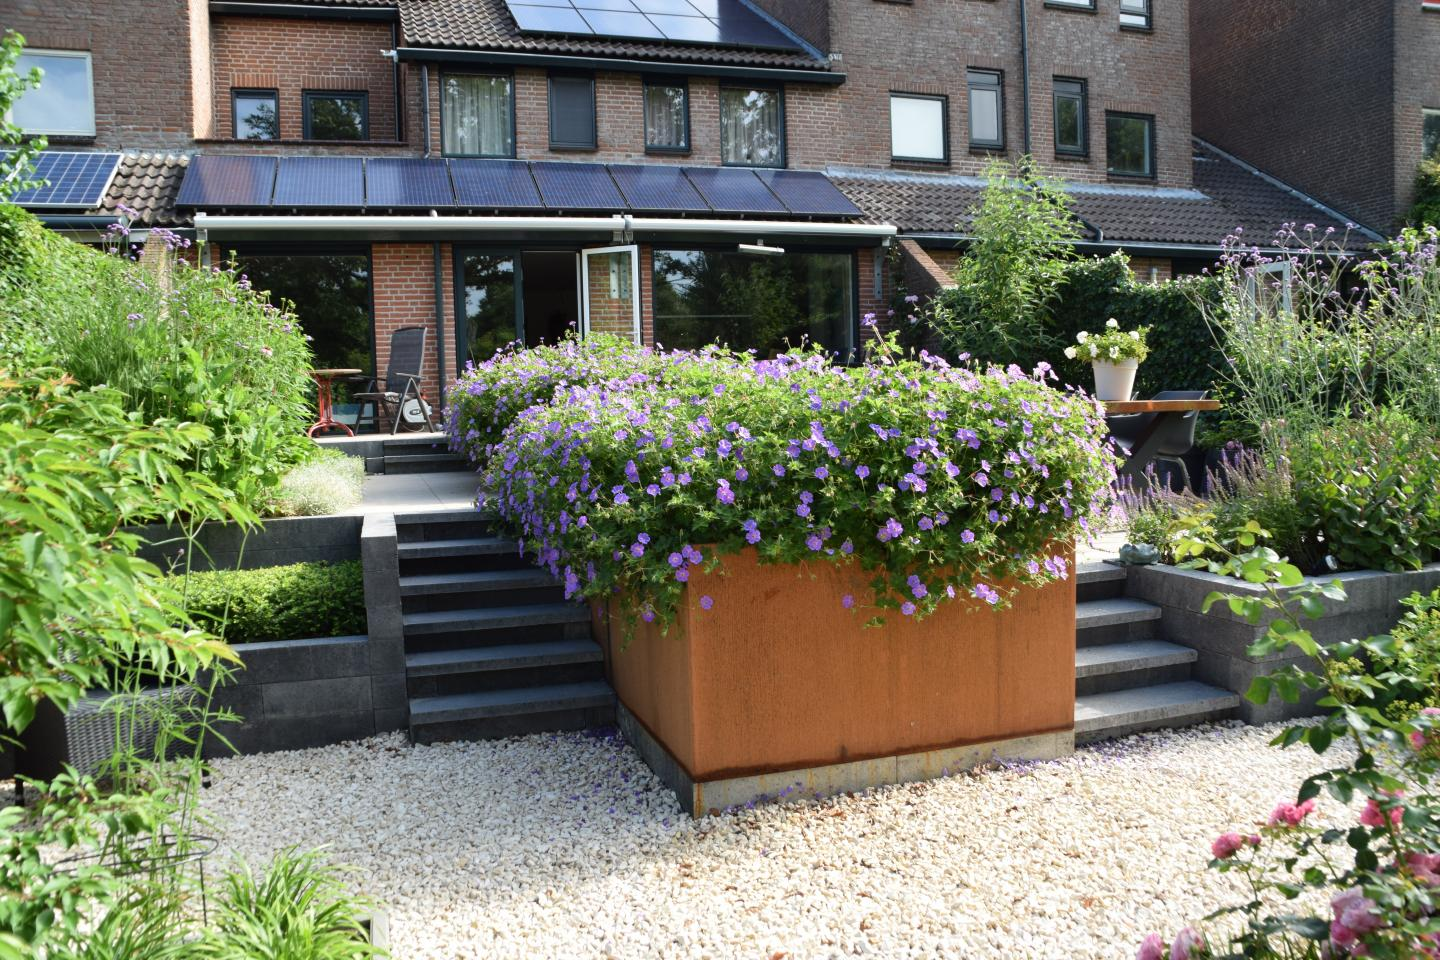 Dutch Quality Gardens Mocking Hoveniers Etage Tuin